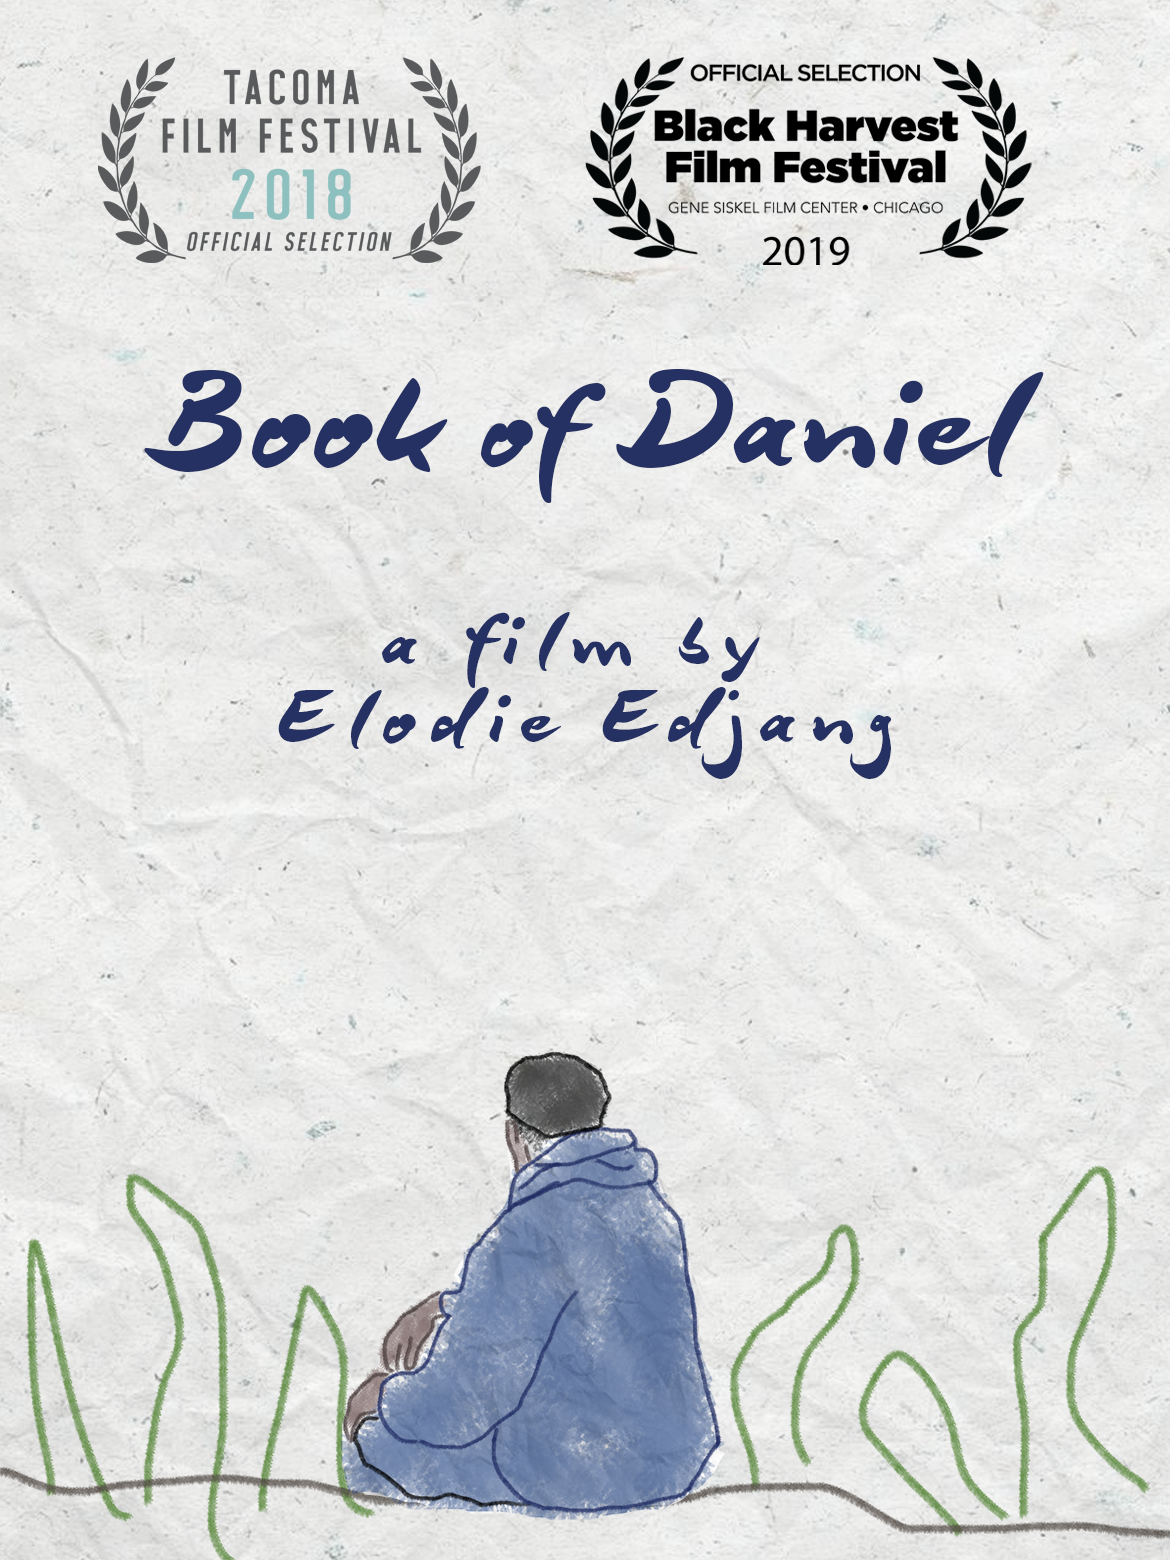 Book of Daniel Poster with Laurels.png